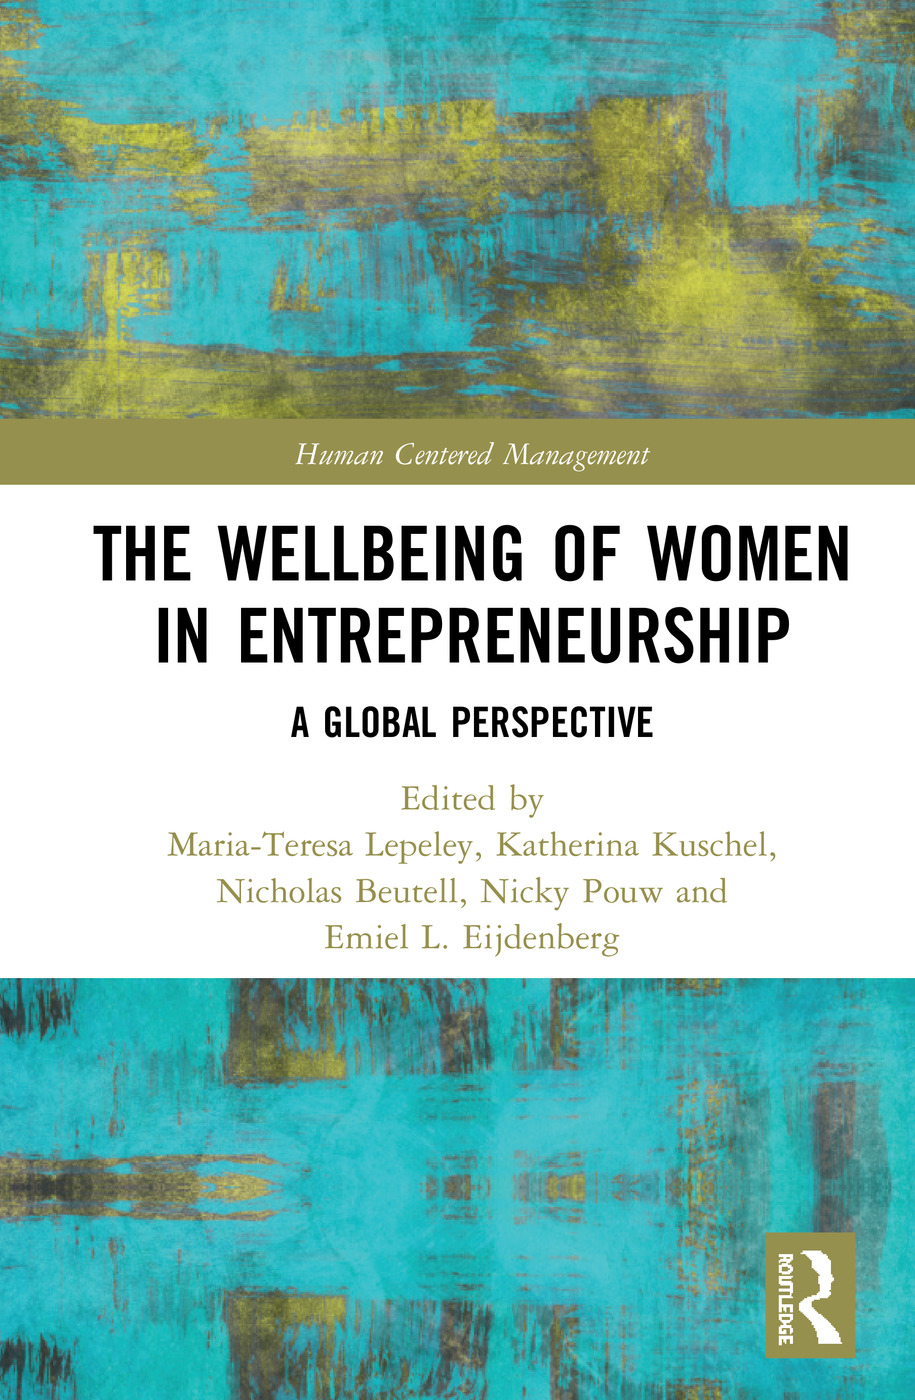 The Wellbeing of Women in Entrepreneurship: A Global Perspective book cover